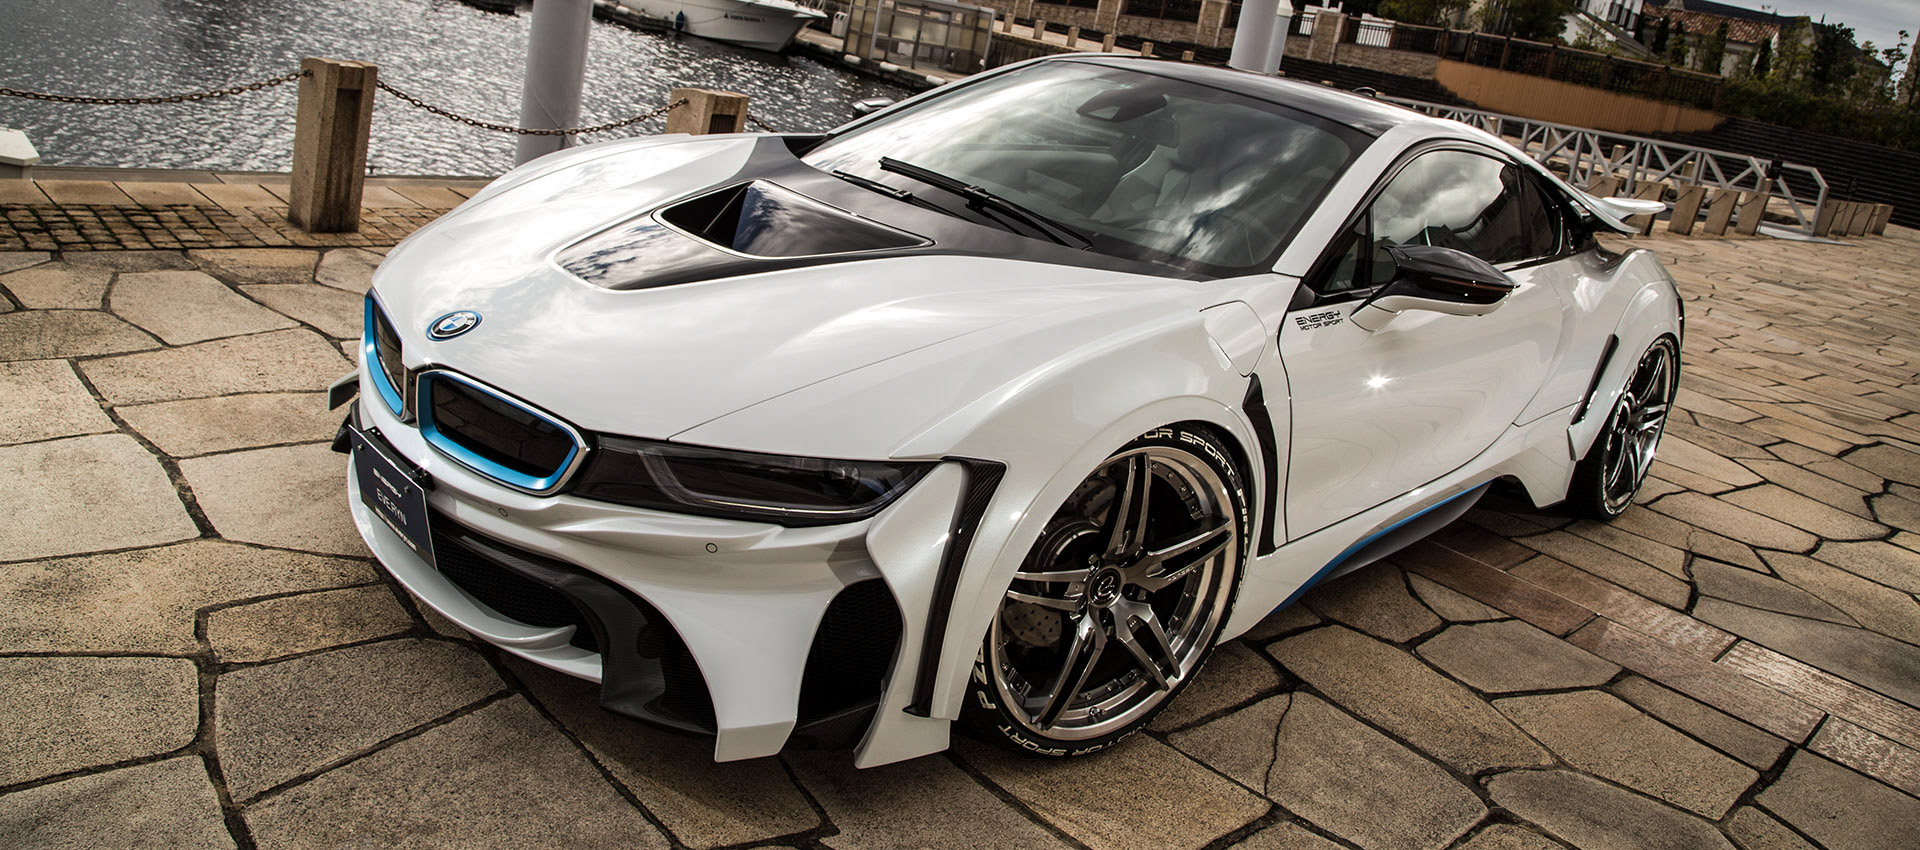 bmw i8 receives energy motor sport bodykit package image 419172. Black Bedroom Furniture Sets. Home Design Ideas